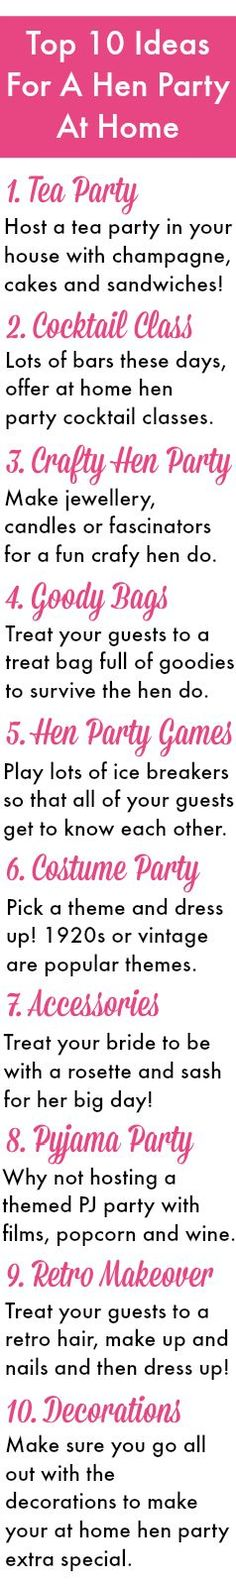 Hen Party Ideas v1 – Top 10 Ideas For A Hen Party At Home | HenBox Blog